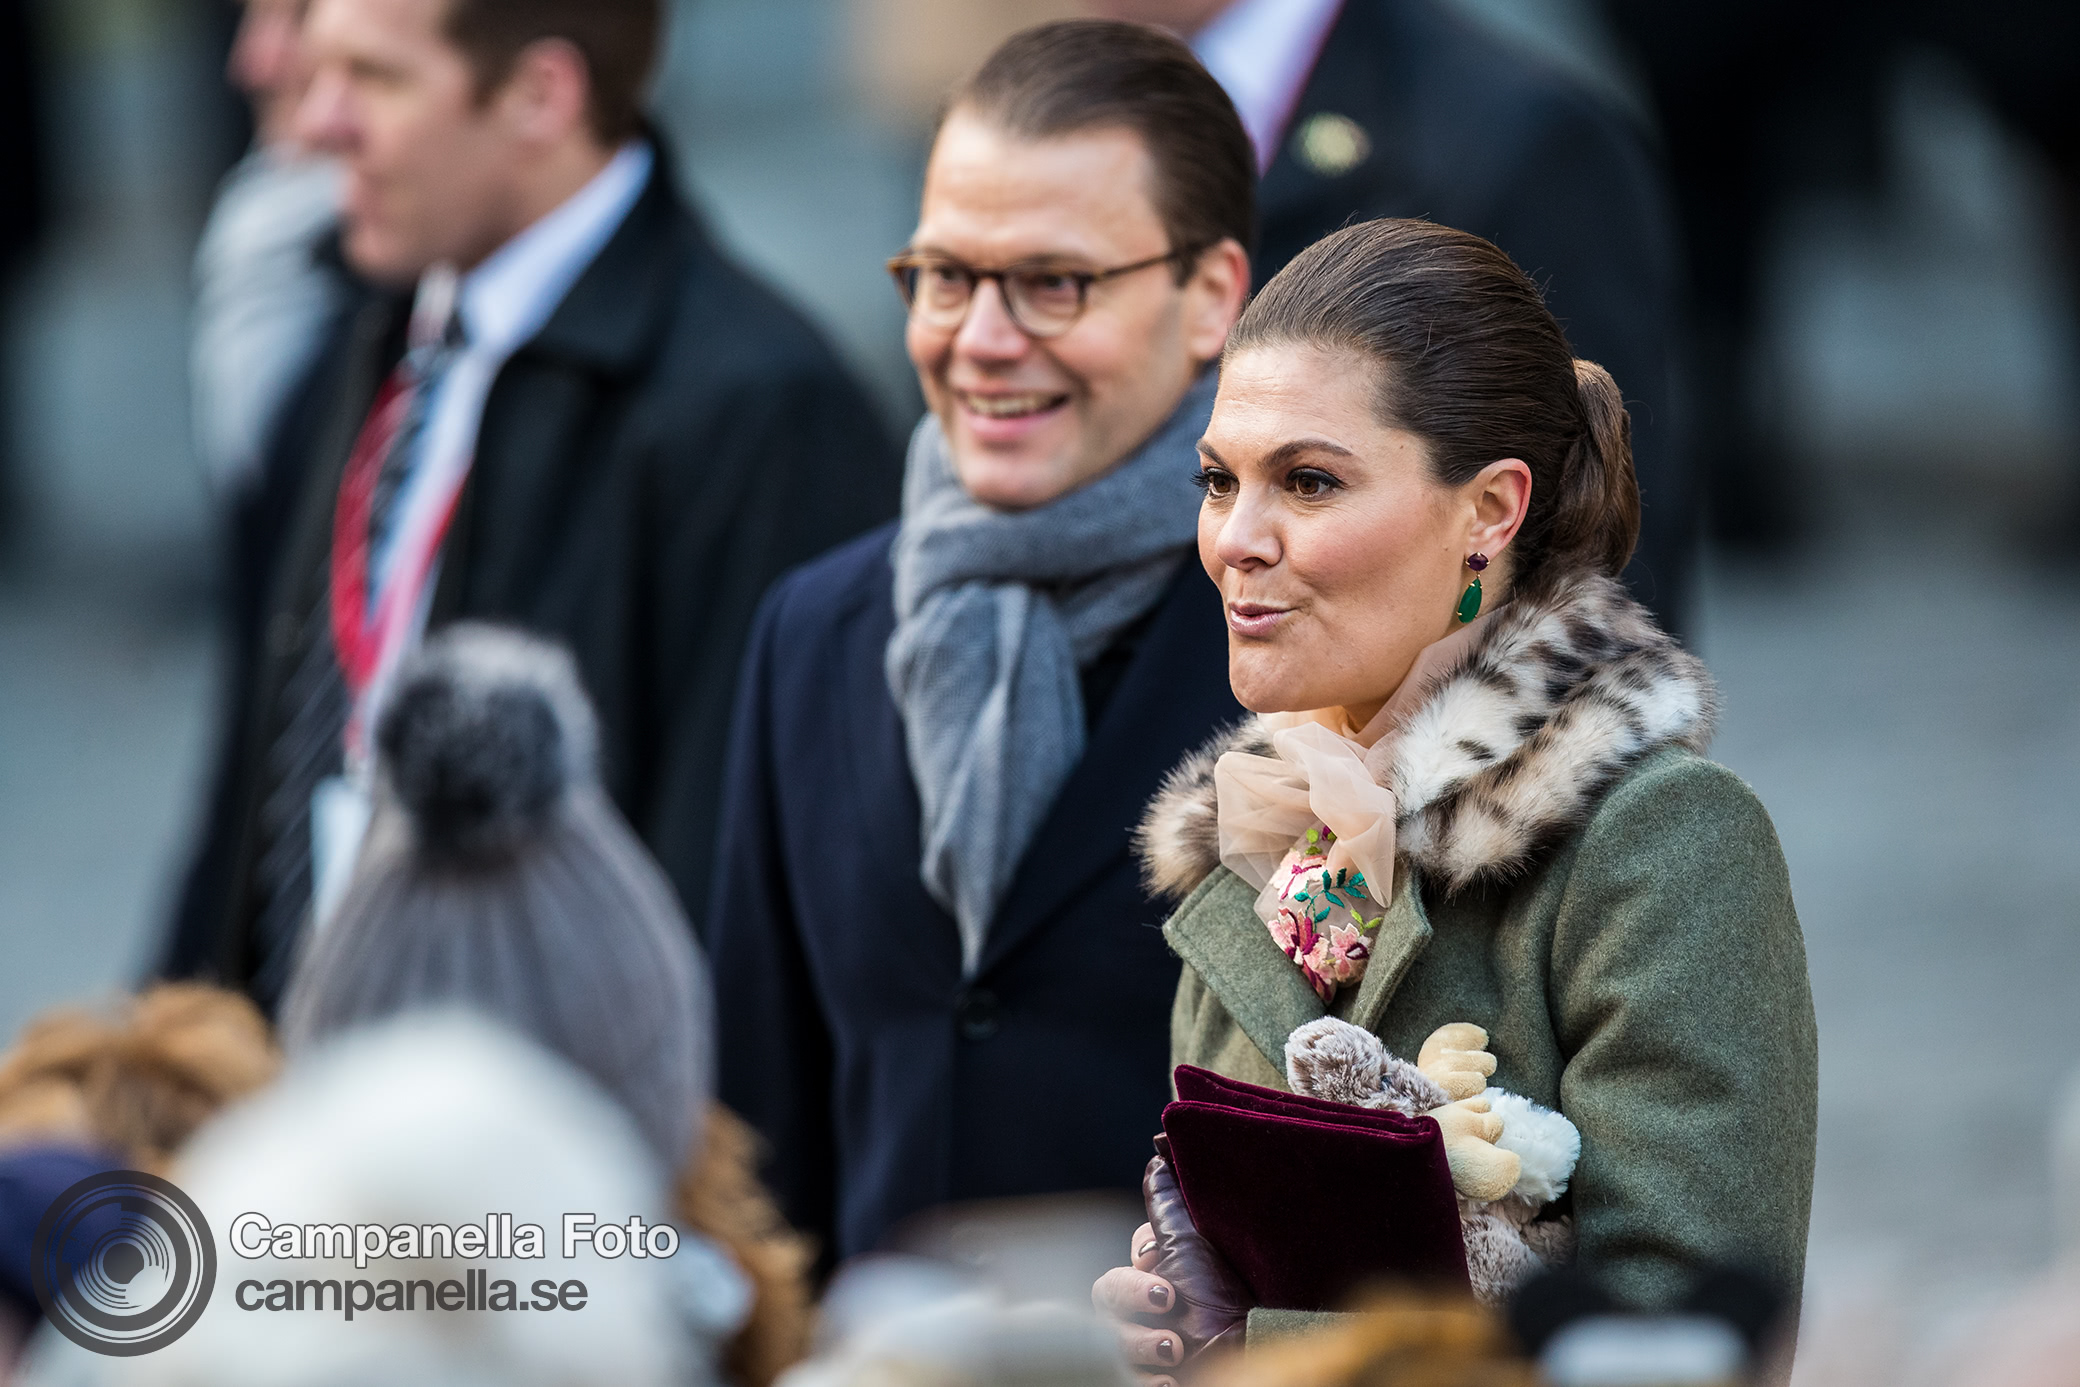 Duke & Duchess of Cambridge visit Stockholm - Michael Campanella Photography